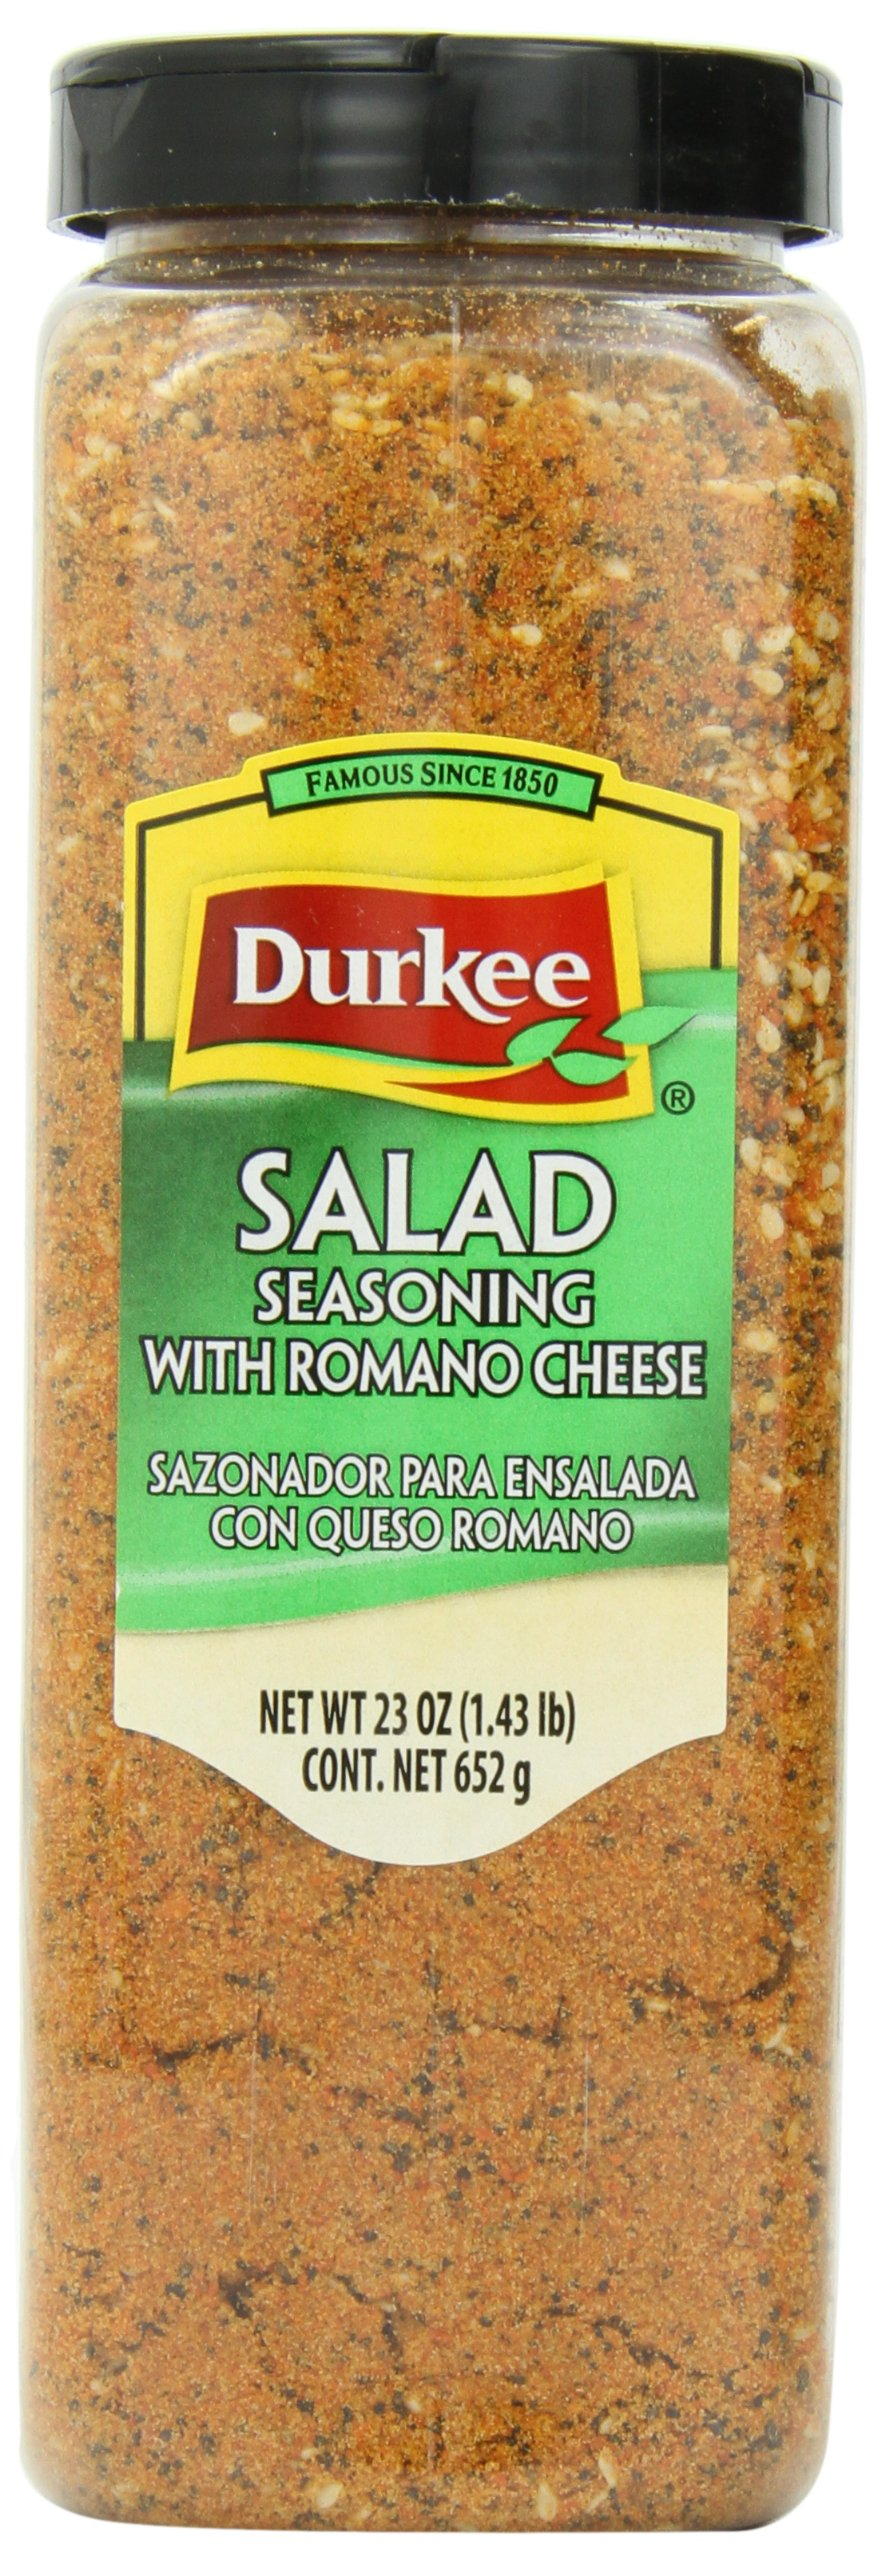 Durkee Salad Seasoning with Romano Cheese, 23-Ounce